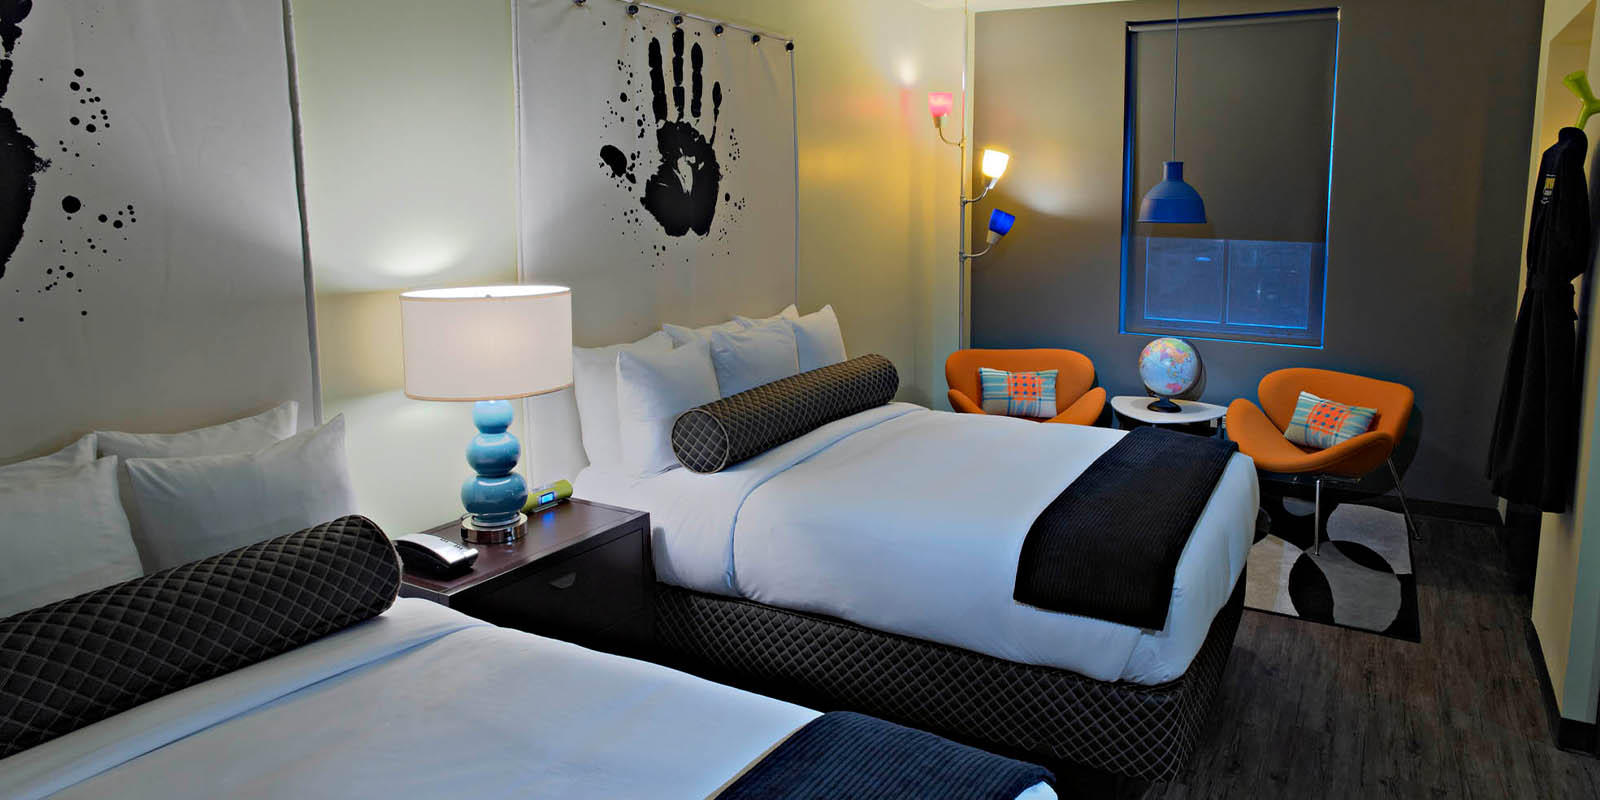 Double Double Suite of ACME Hotel Company, Chicago